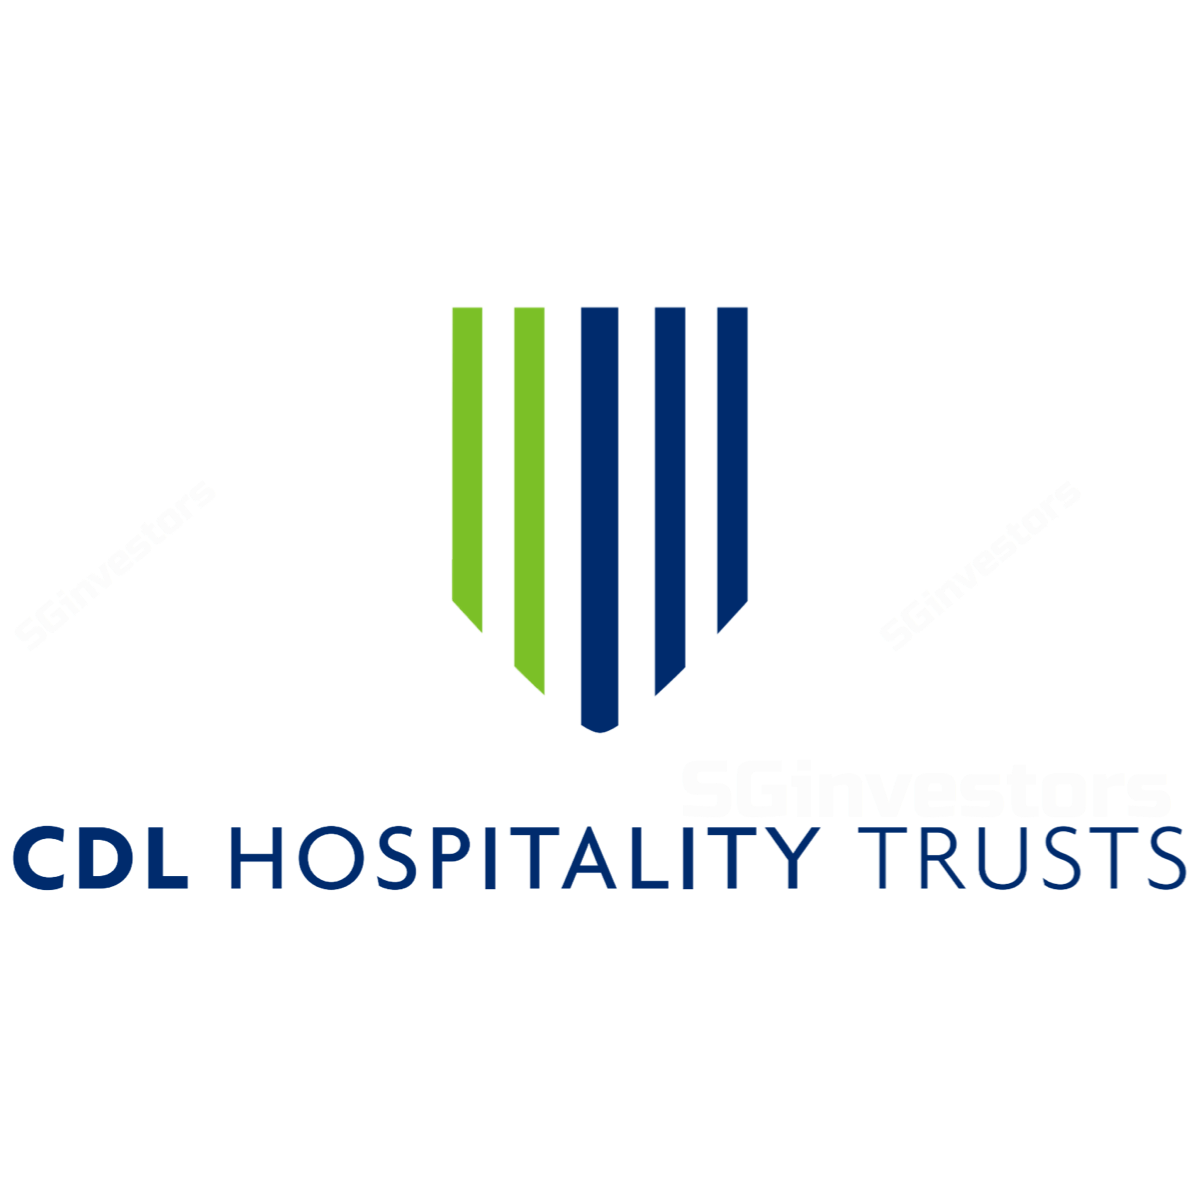 CDL Hospitality Trusts - OCBC Investment 2017-04-28: Challenges Still Ahead in SG